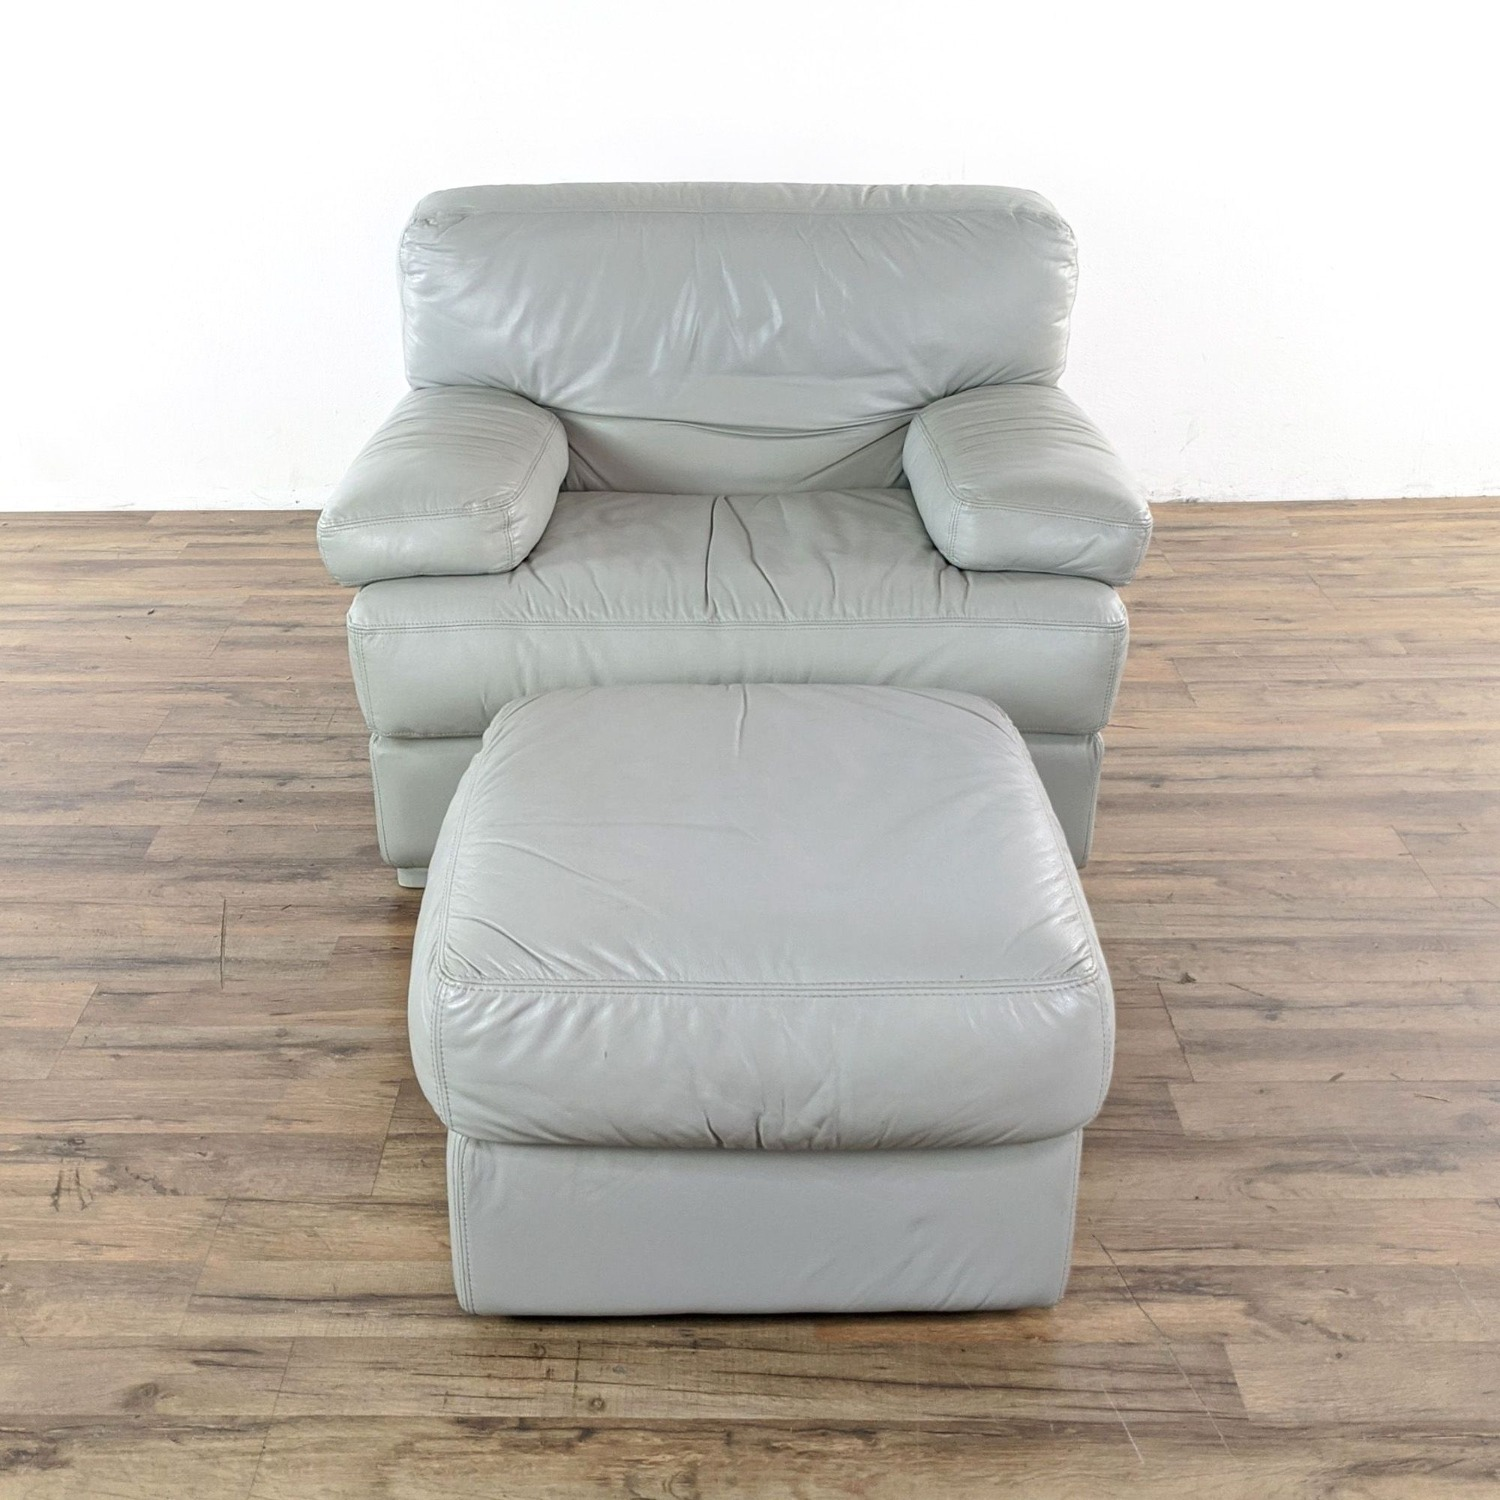 Natuzzi Italian Leather Chair and Ottoman in Gray - image-5